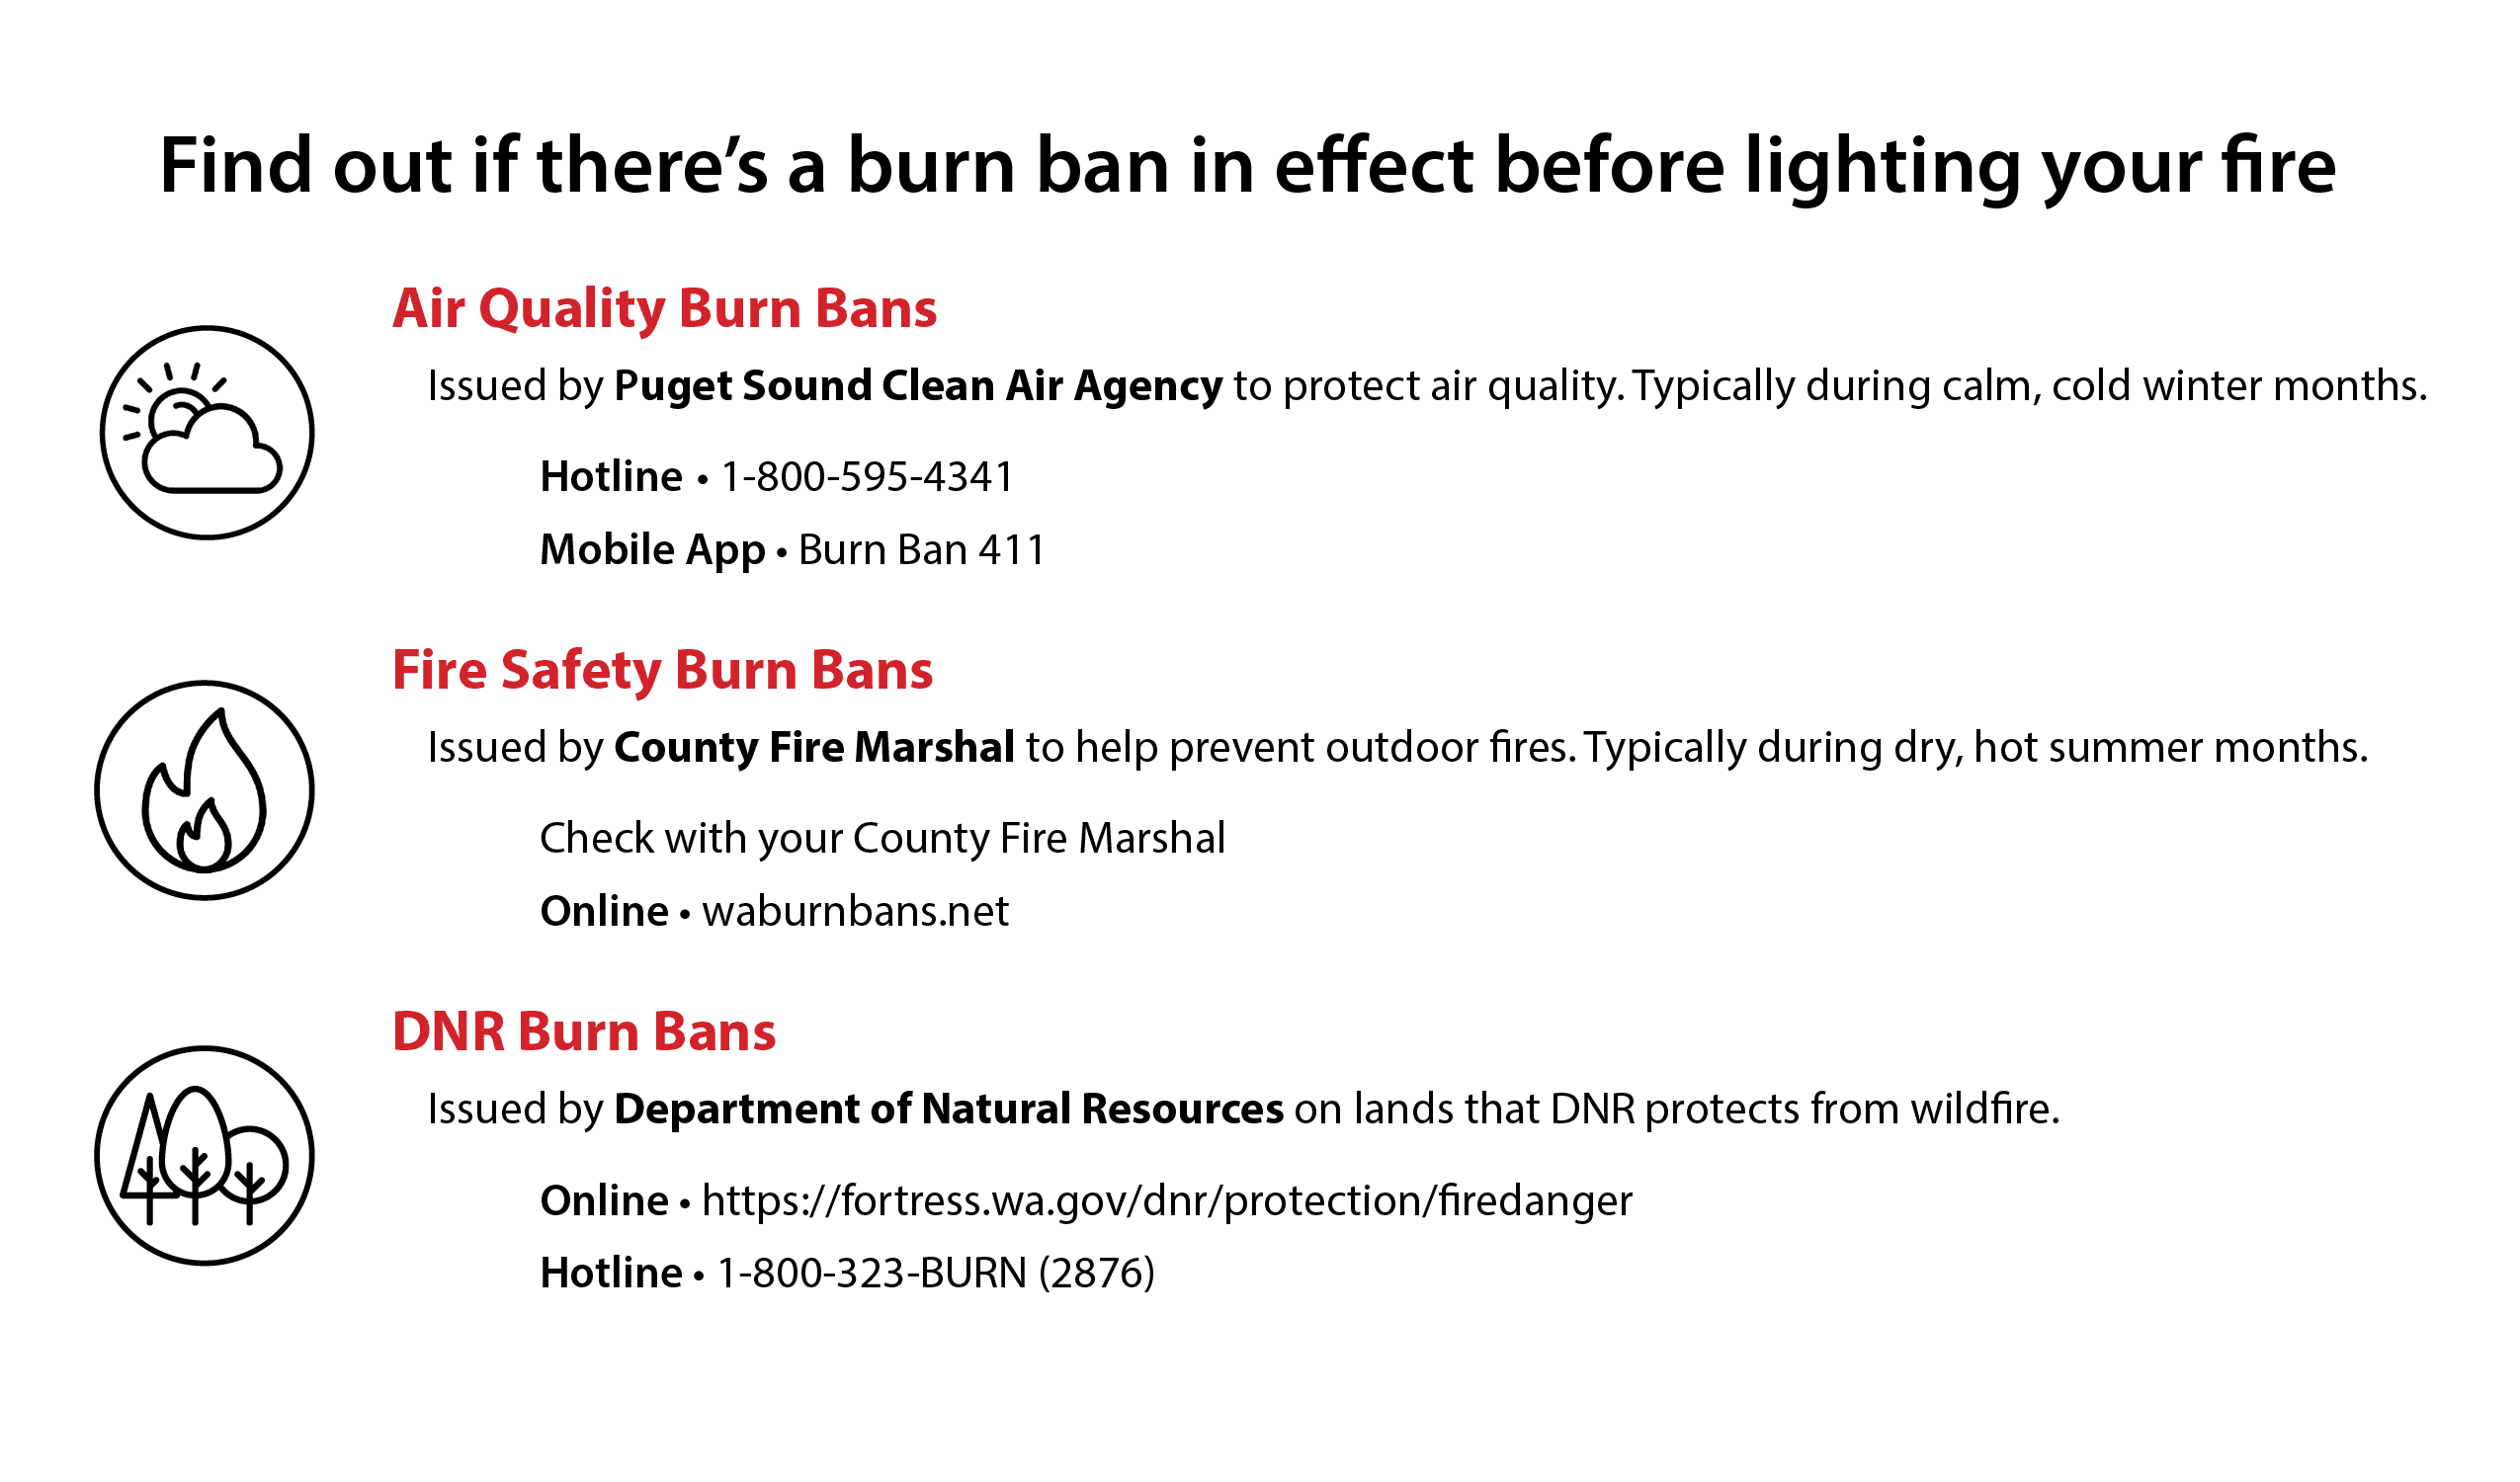 List of the three types of burn bans and the agency responsible for declaring